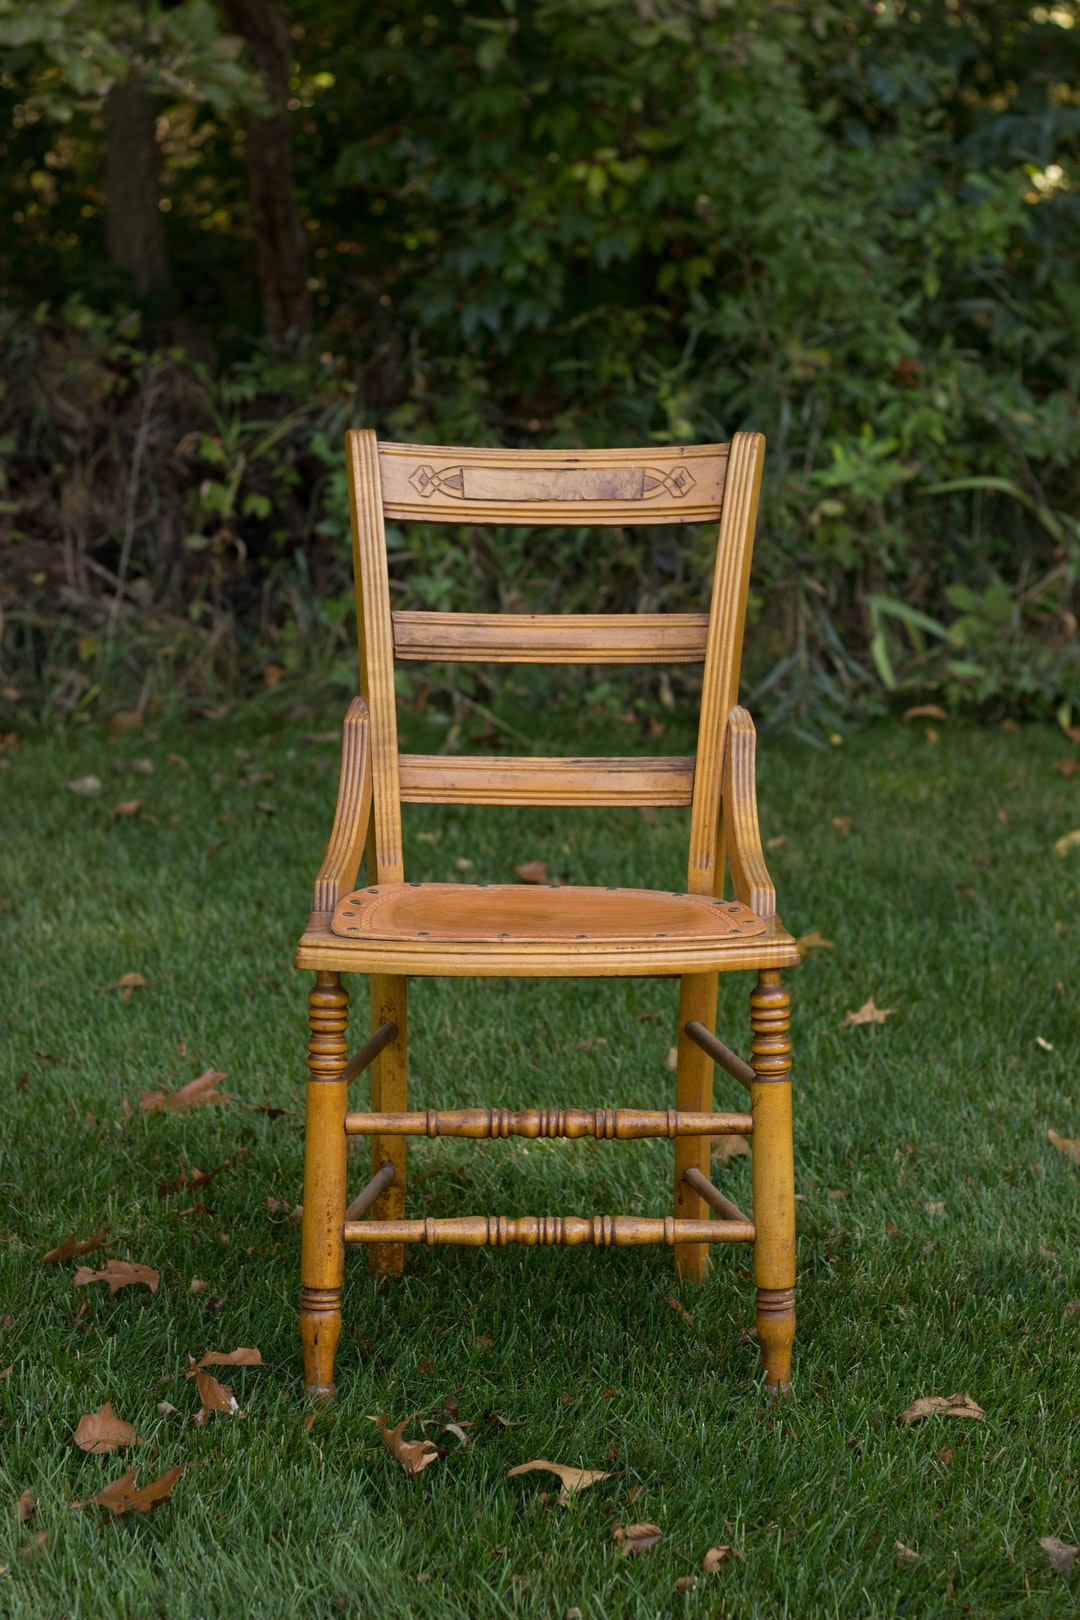 Prime The 60 Best Chair Jokes Worst Jokes Ever Gmtry Best Dining Table And Chair Ideas Images Gmtryco